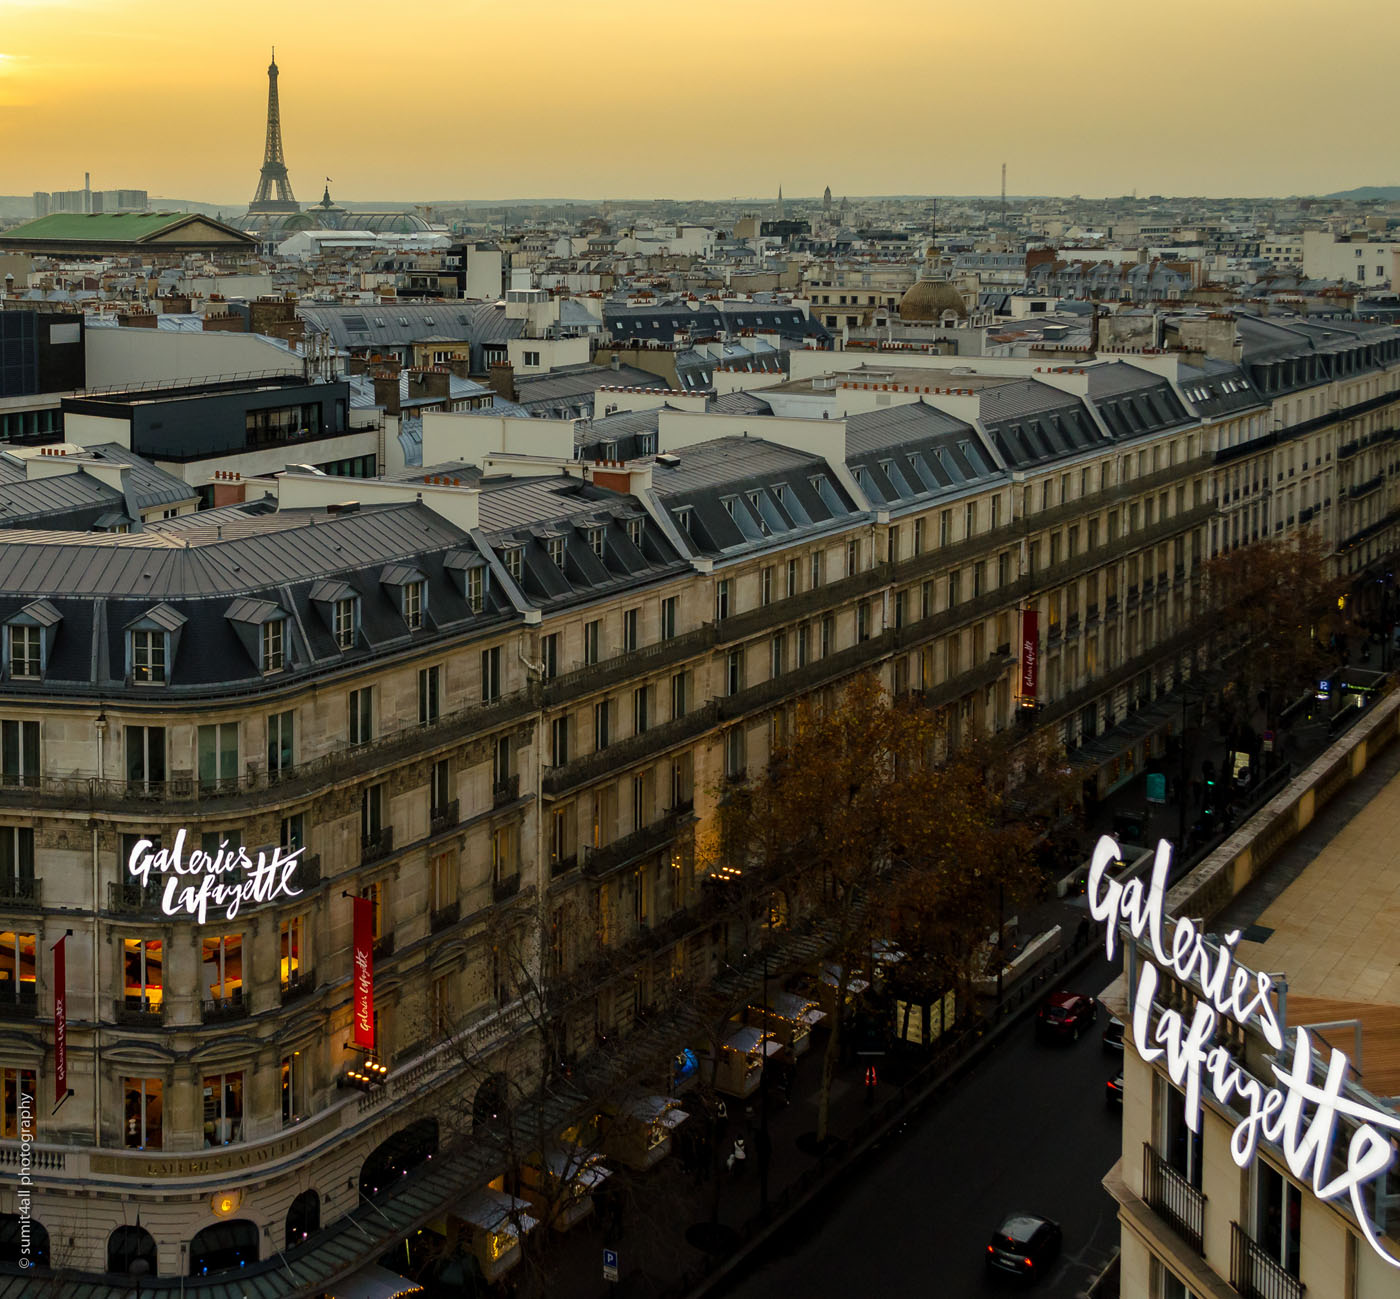 The Eiffel visible during sunset from atop the Galleries Lafayette in Paris